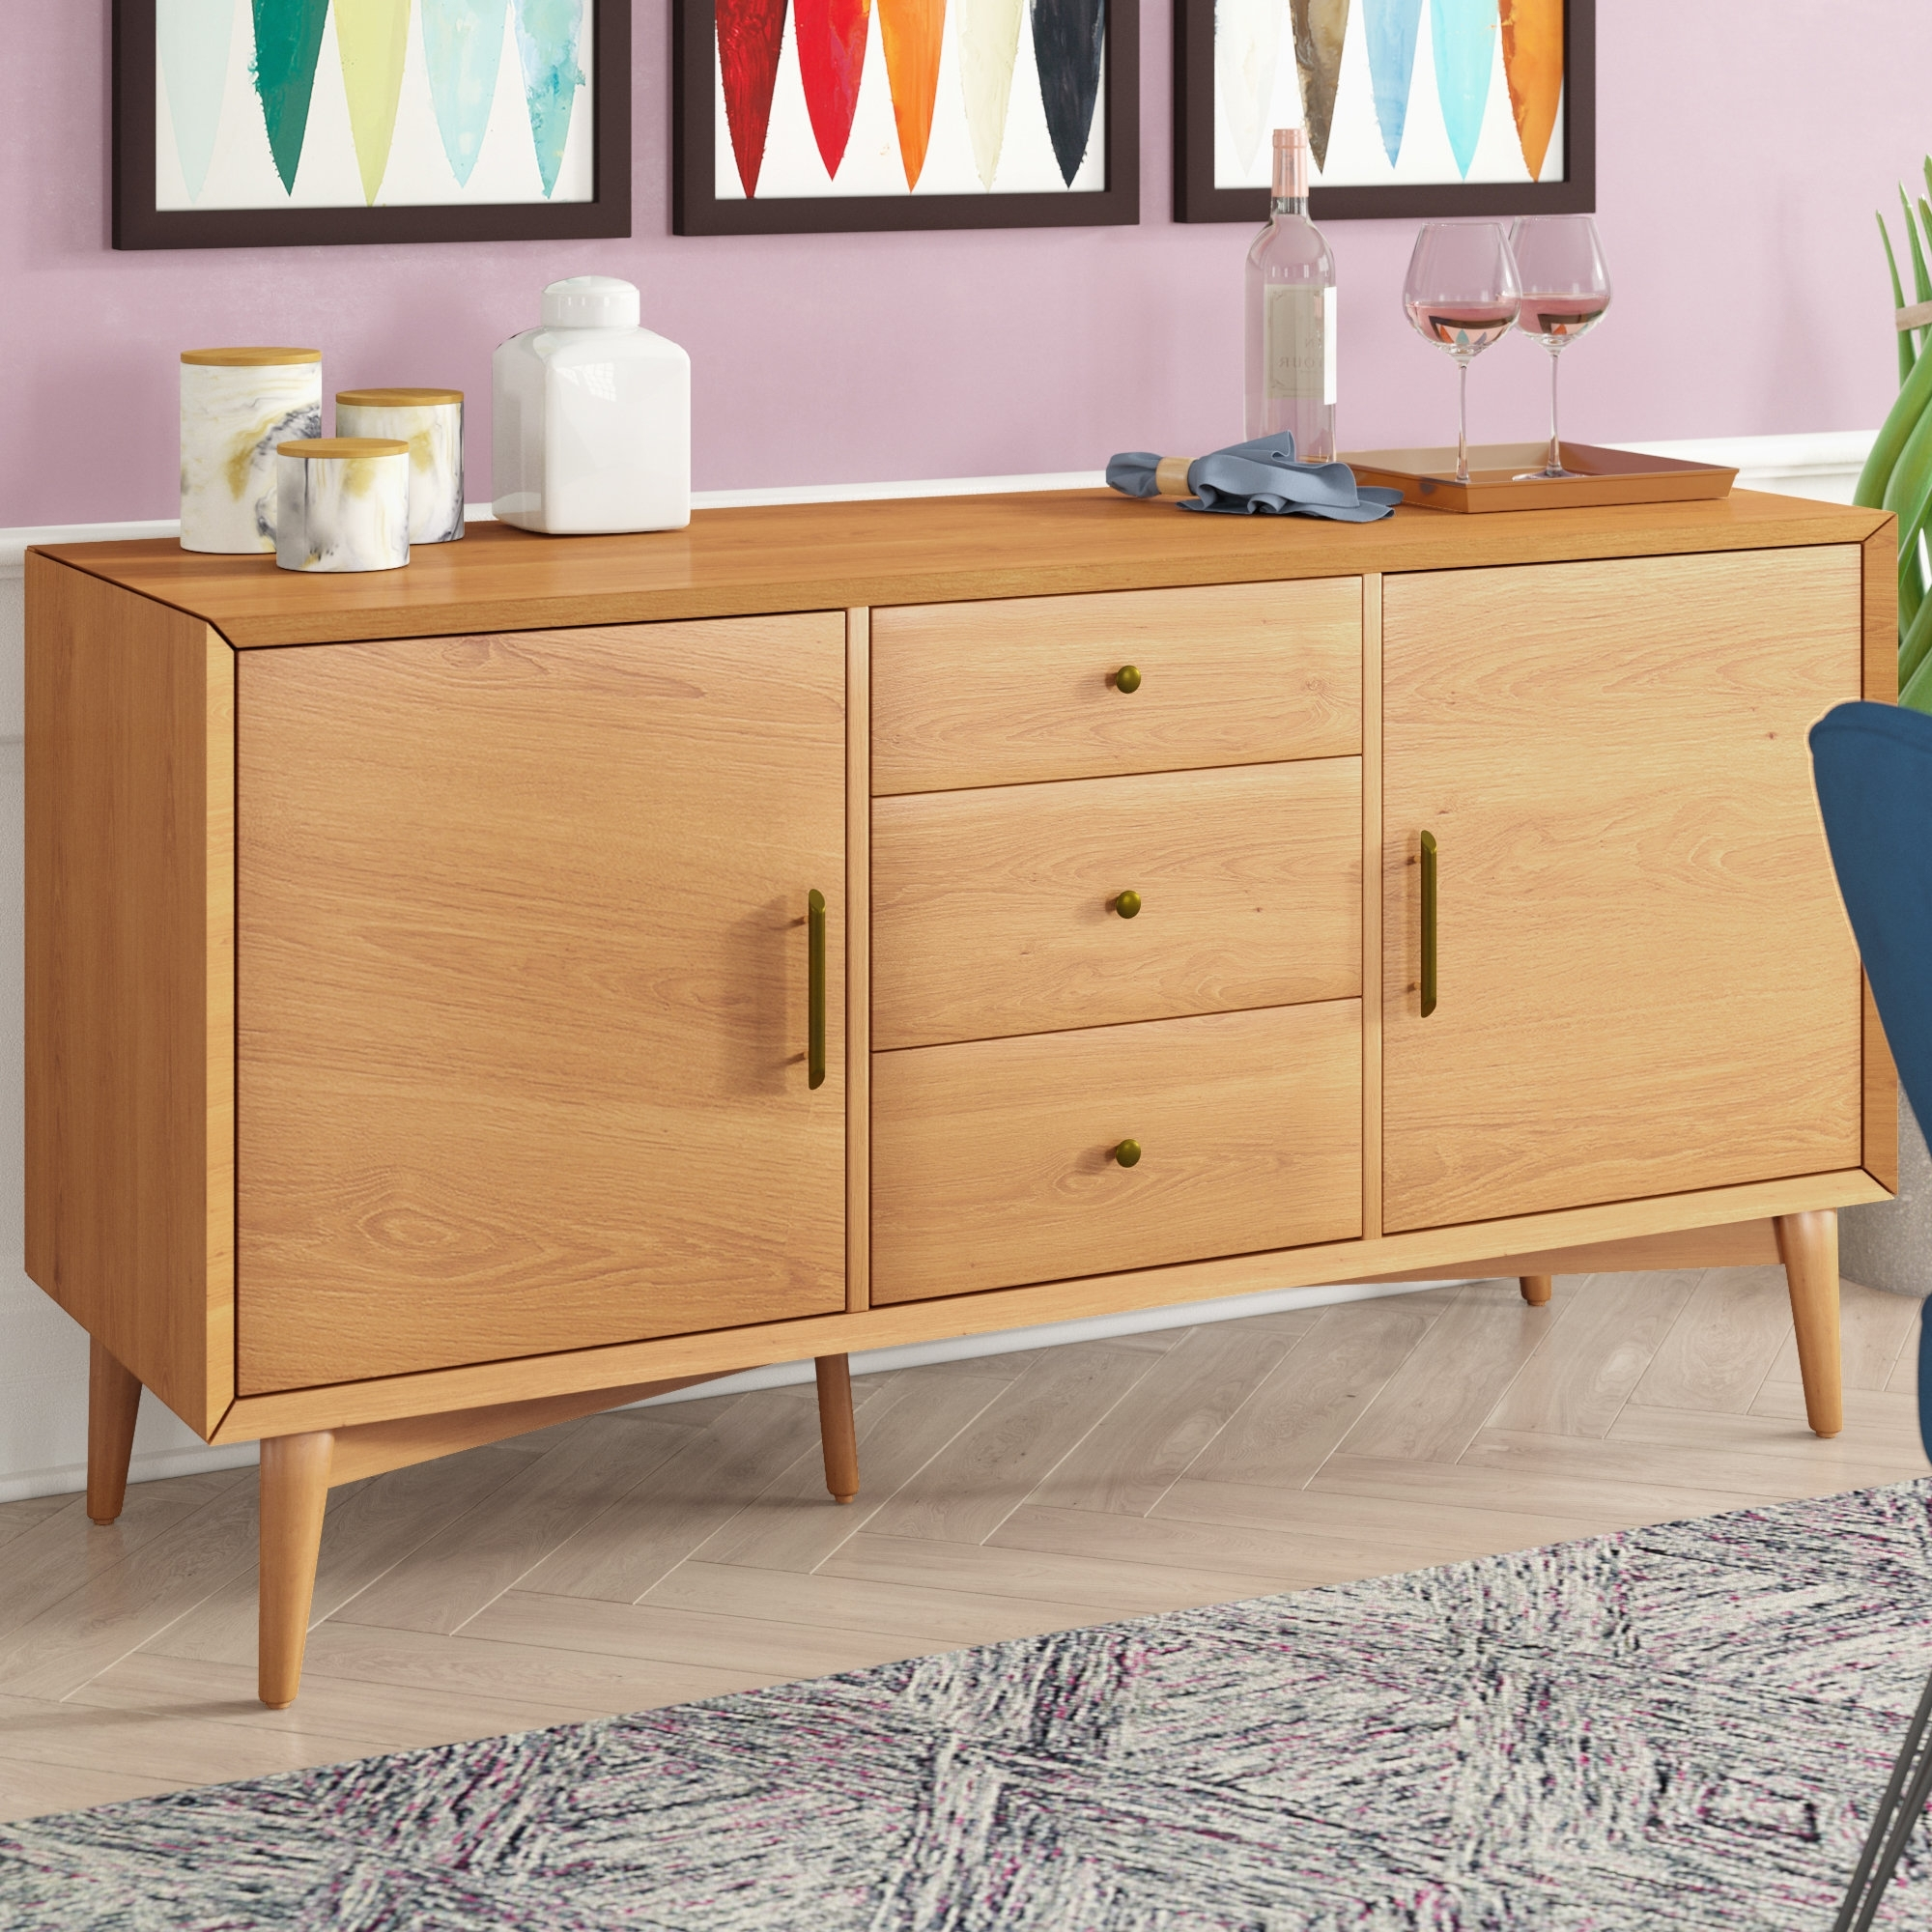 Easmor Sideboard | Allmodern for Boyce Sideboards (Image 10 of 30)